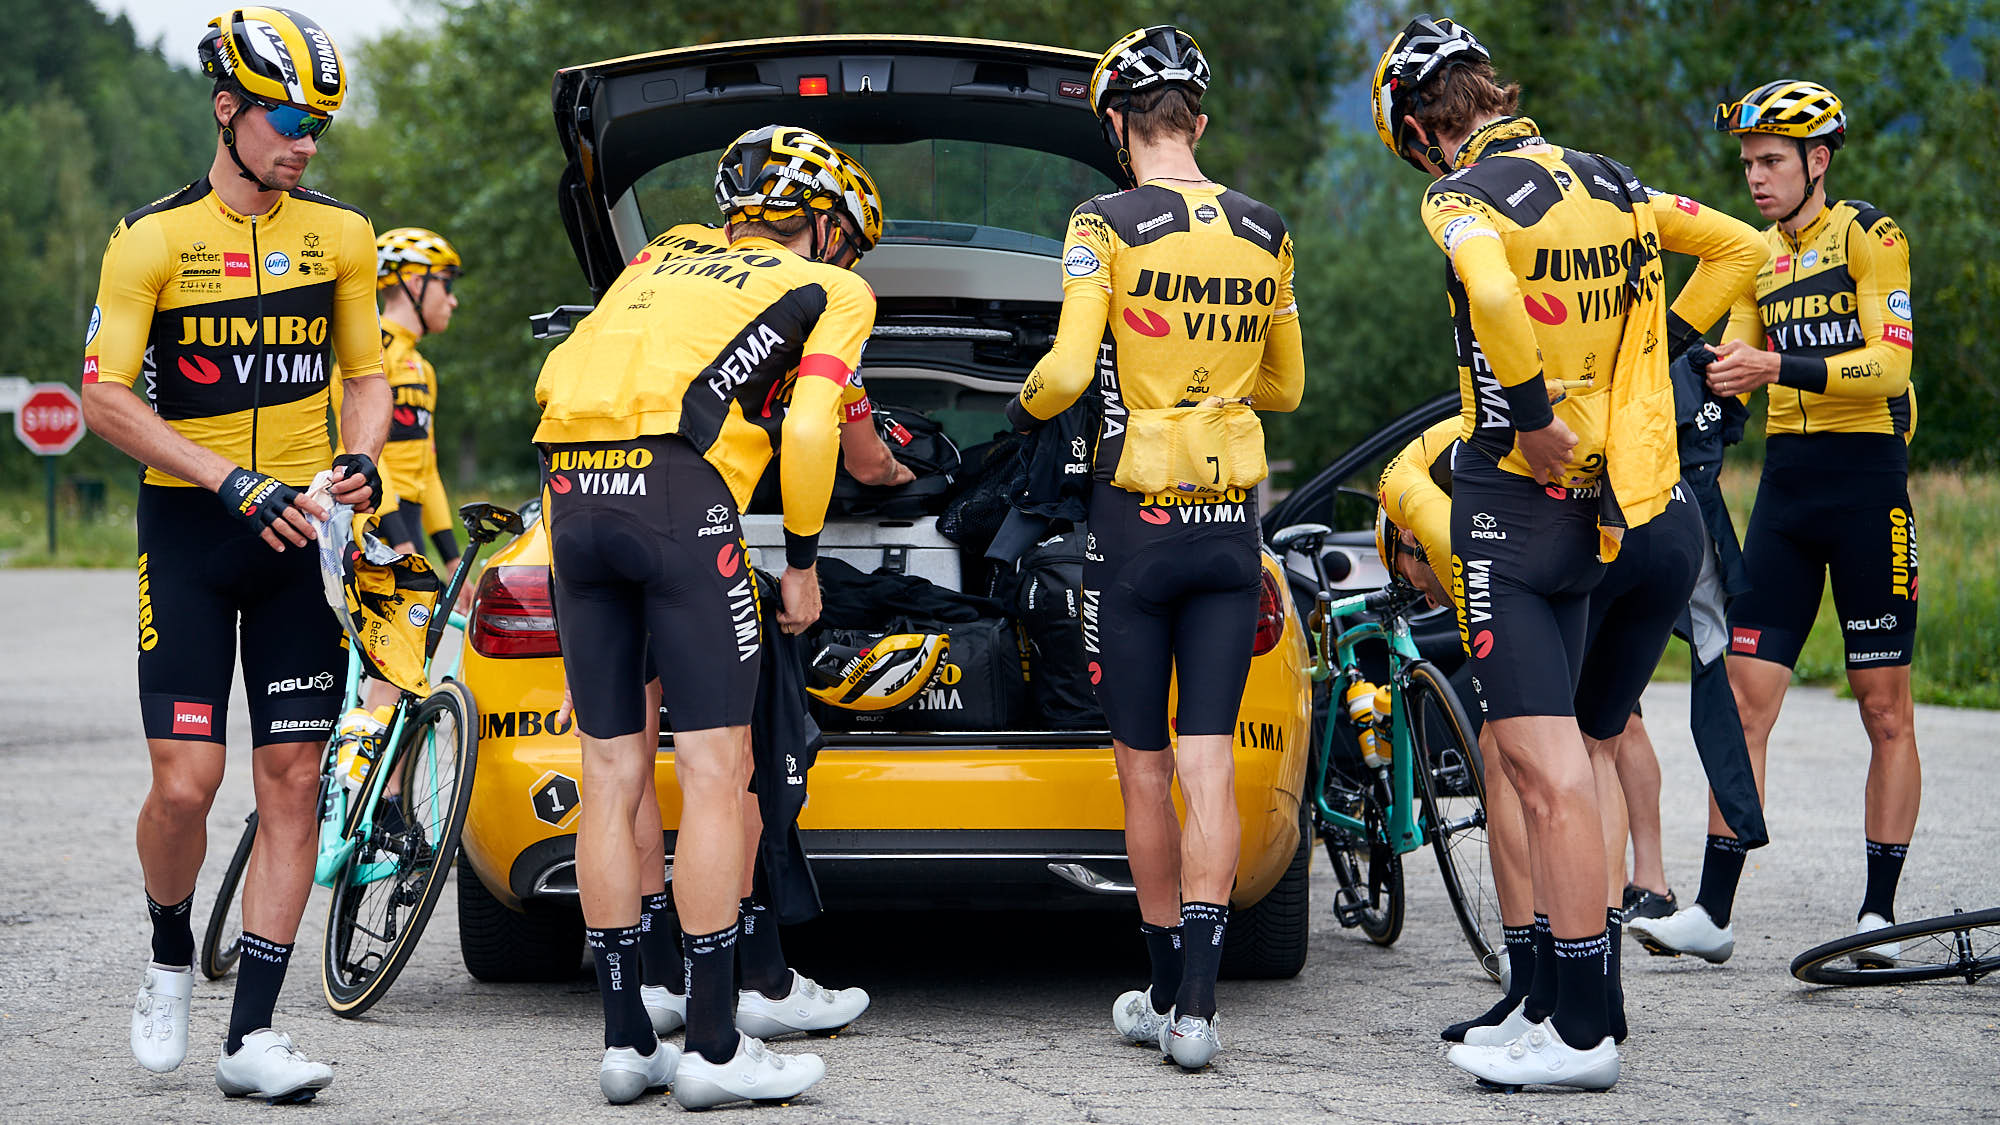 Jumbo-Visma riders changing clothes during training